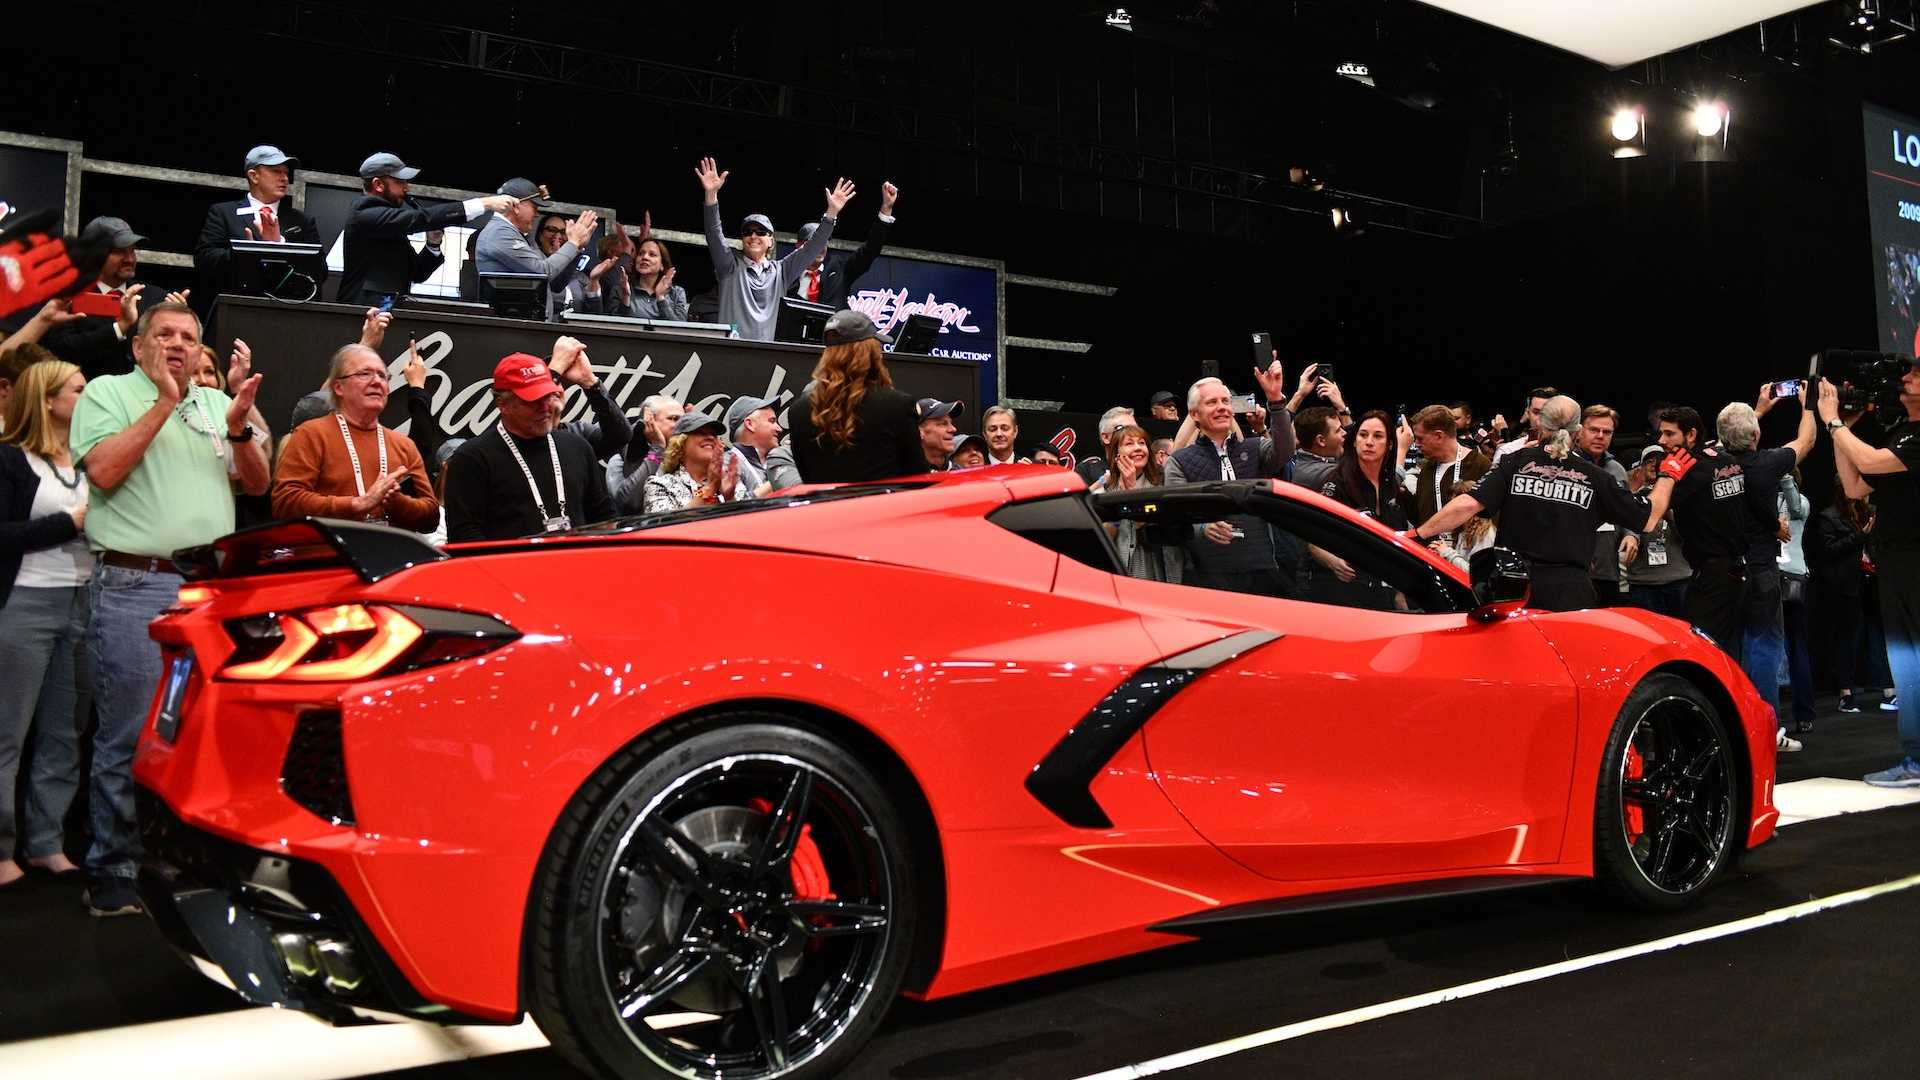 2020_Chevrolet_Corvette_Stingray_VIN_001_Sold_0013